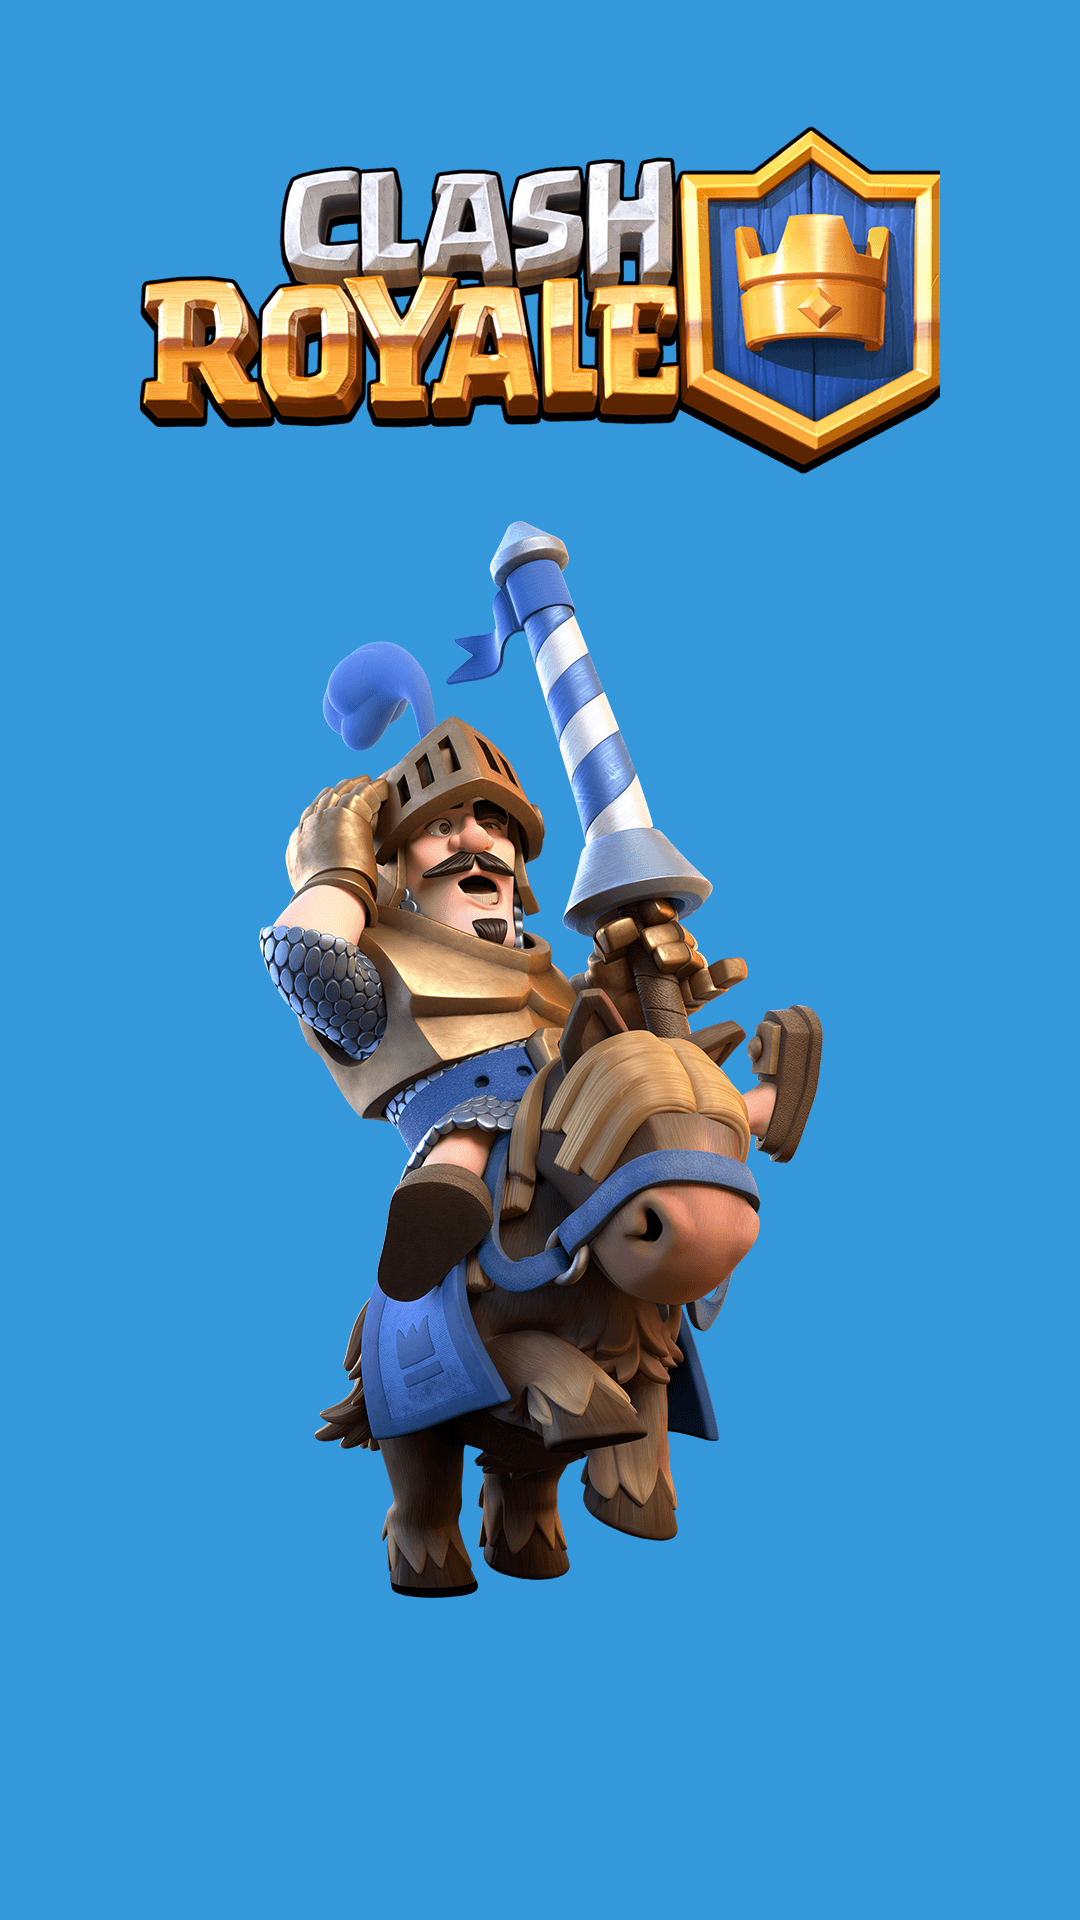 The Blue Prince Clash Royale Games iPhone Wallpaper - Wallpapers ...